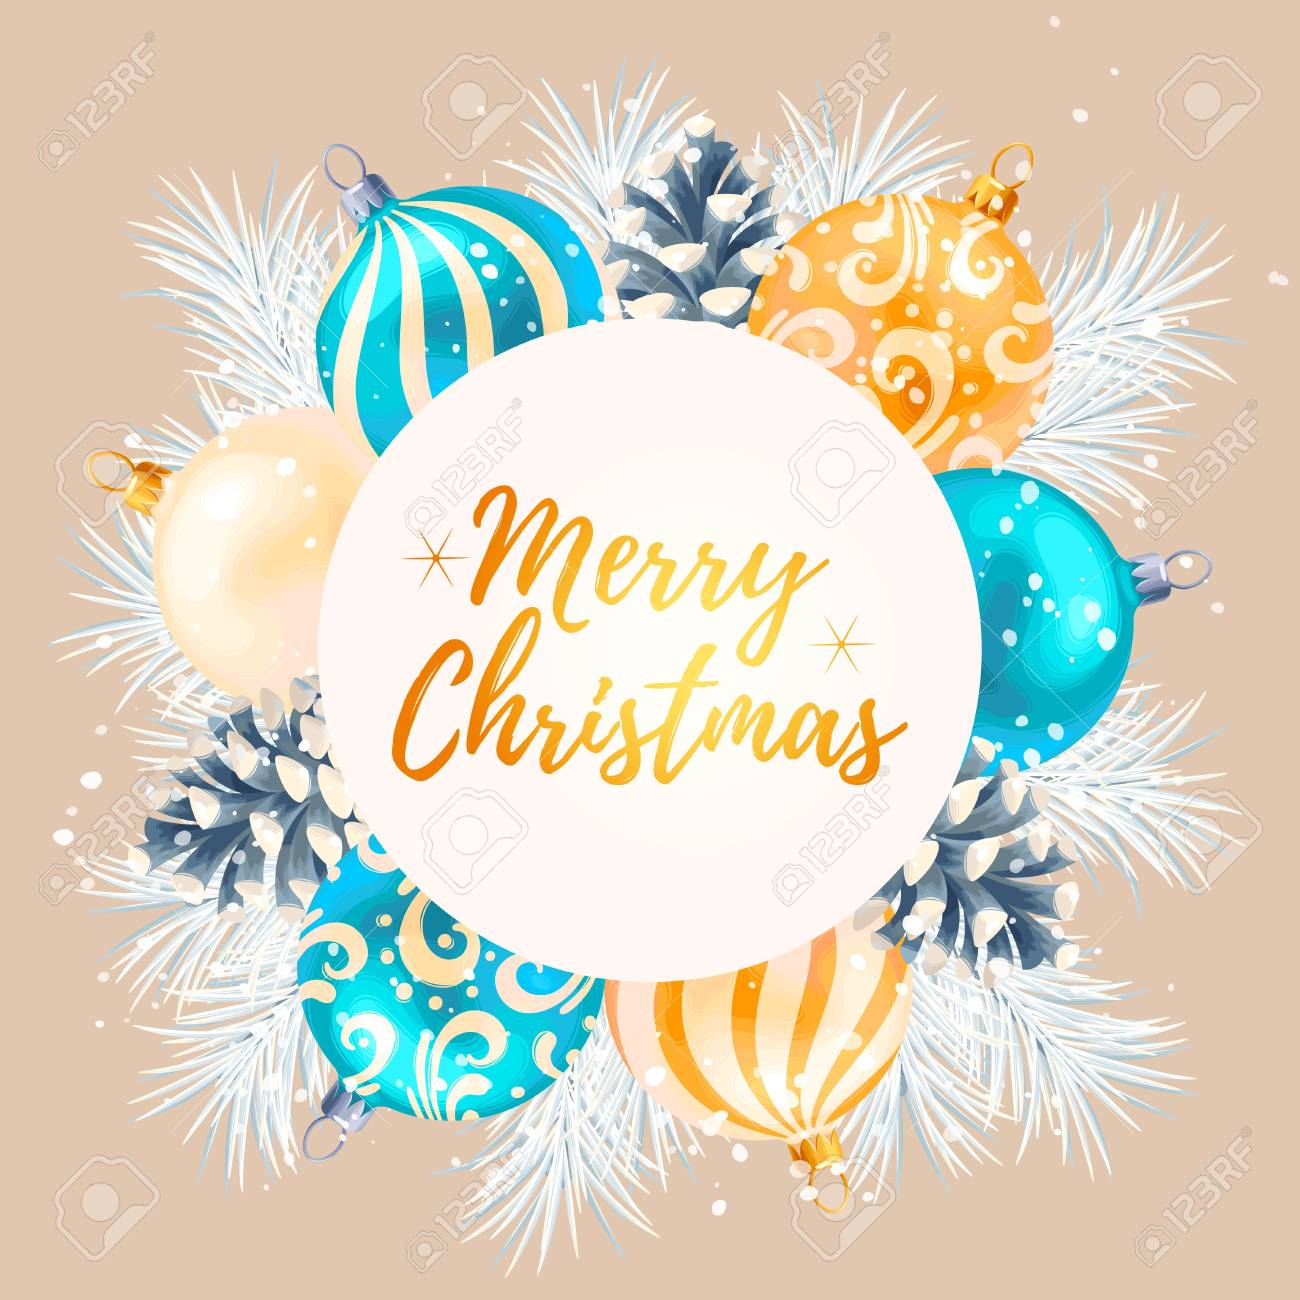 Merry Christmas Greeting Postcard With Christmas Decorations Royalty